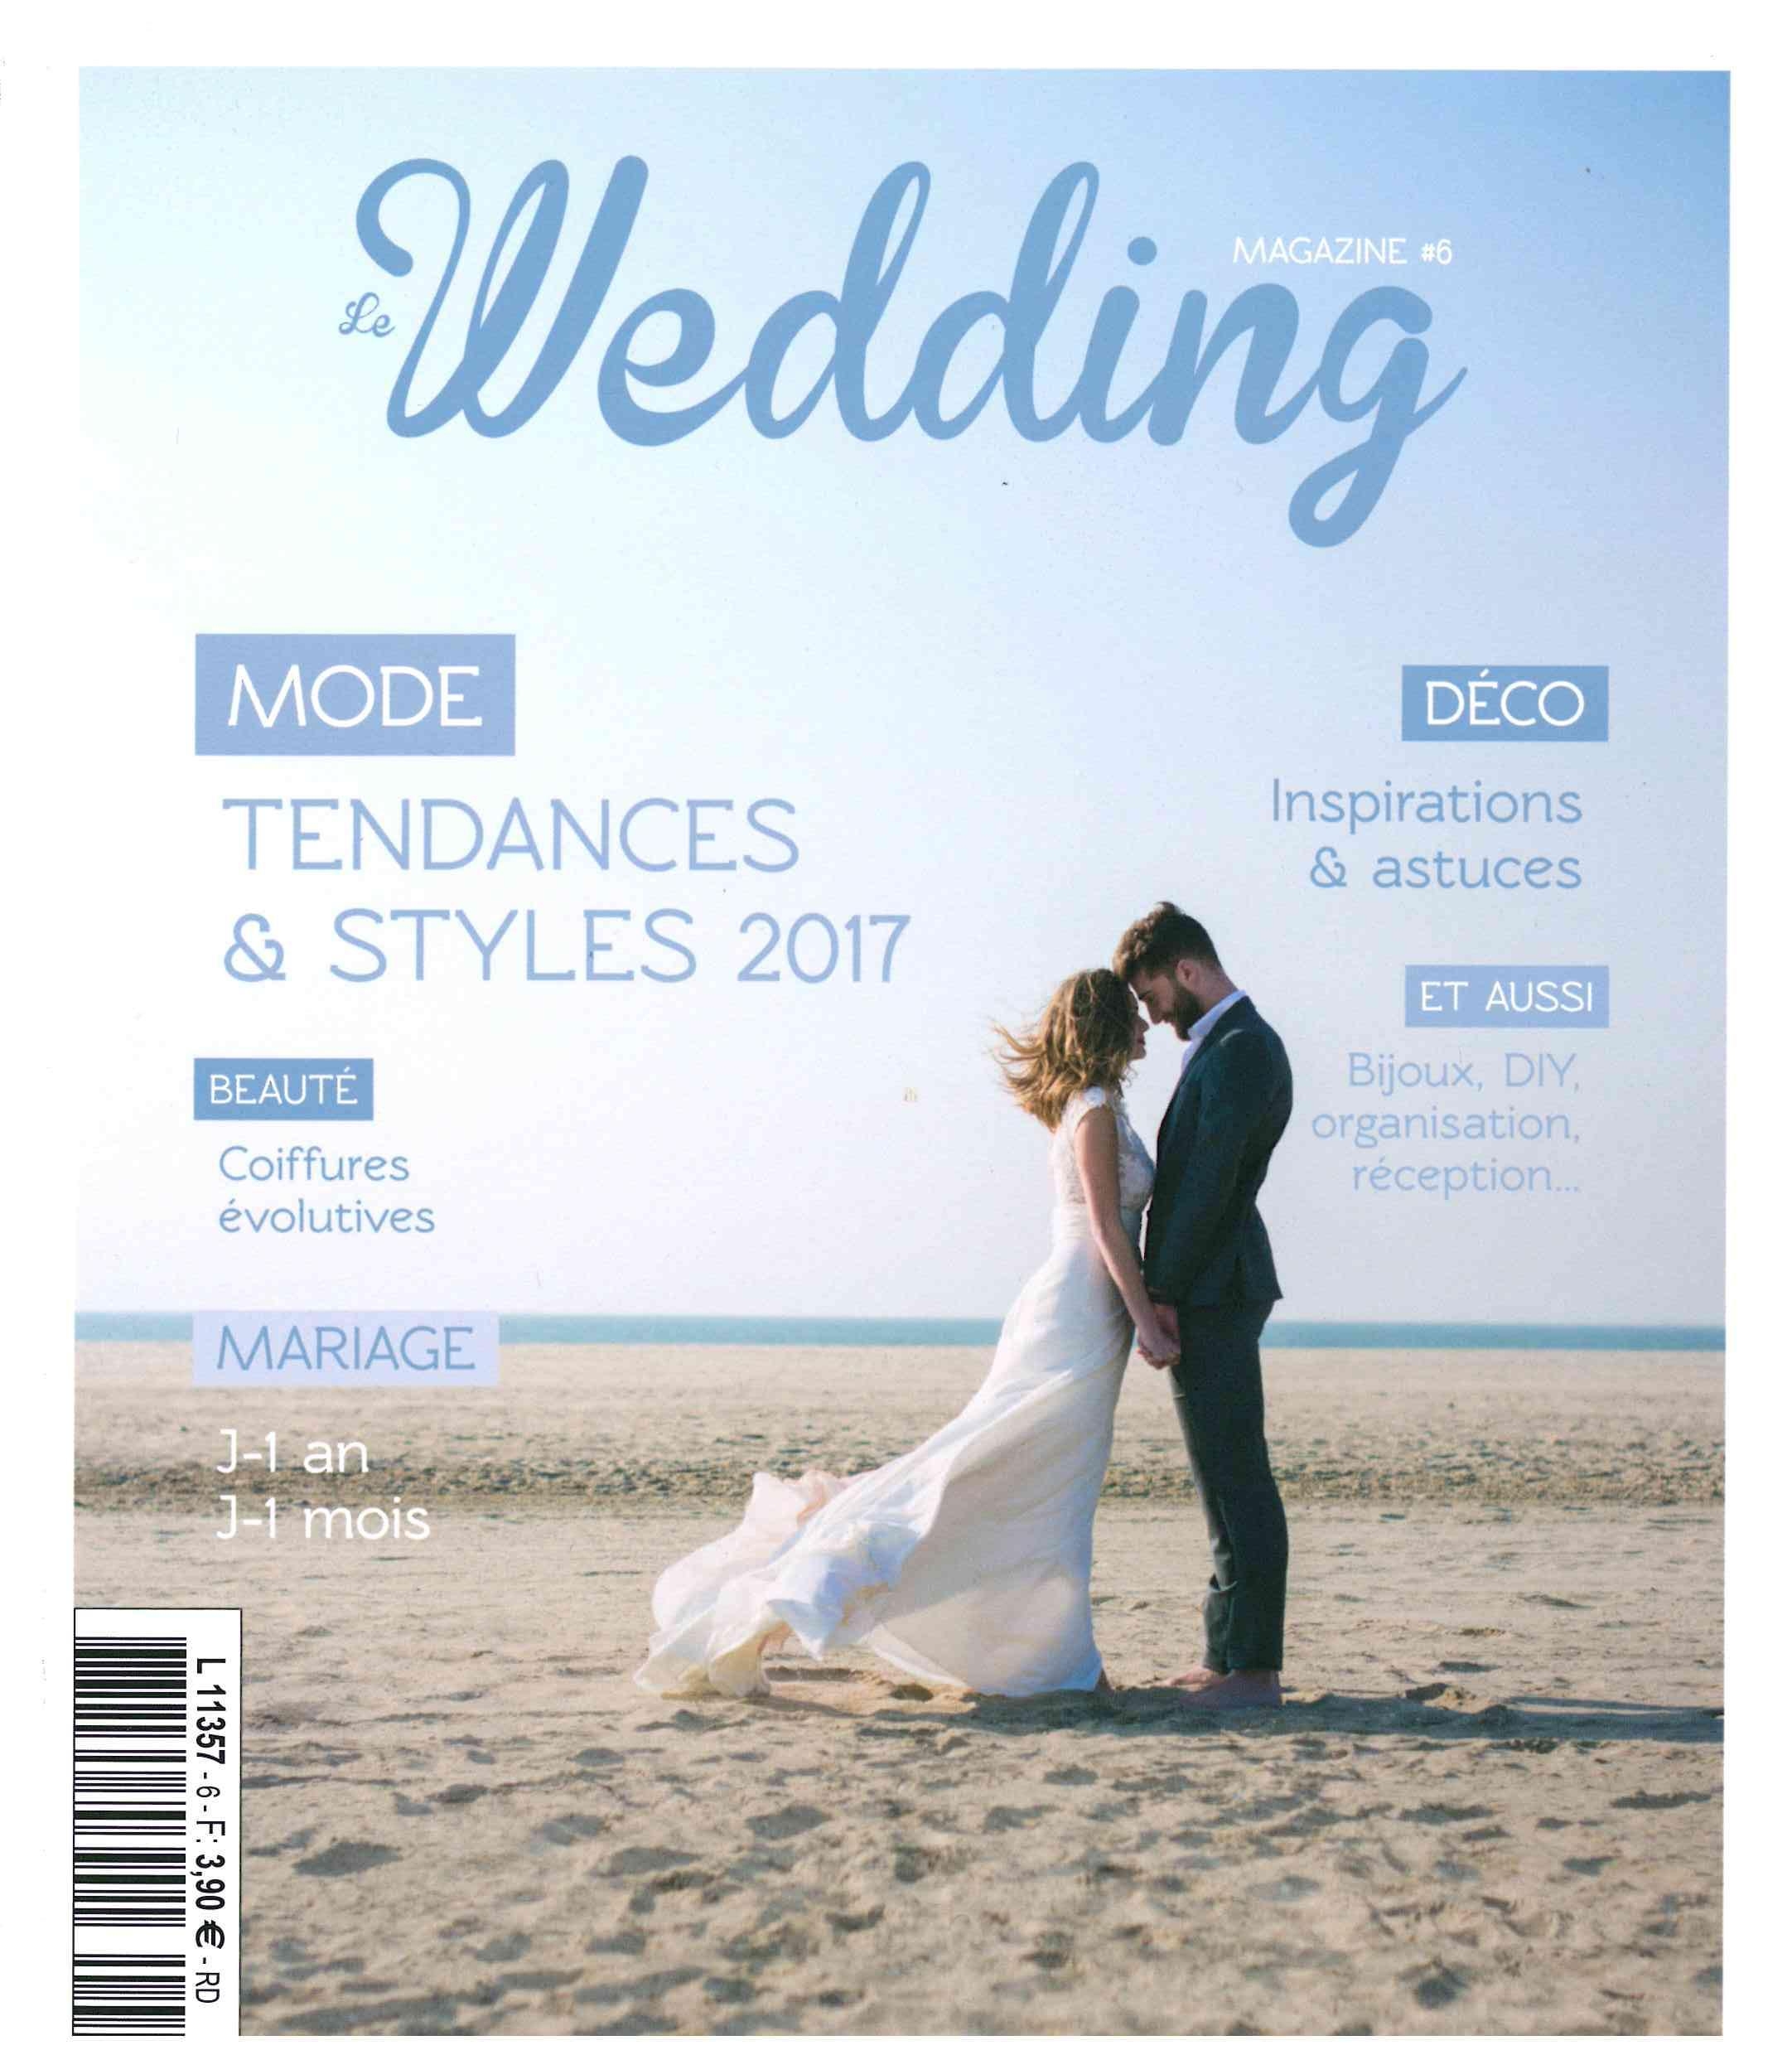 Wedding July-August 2016